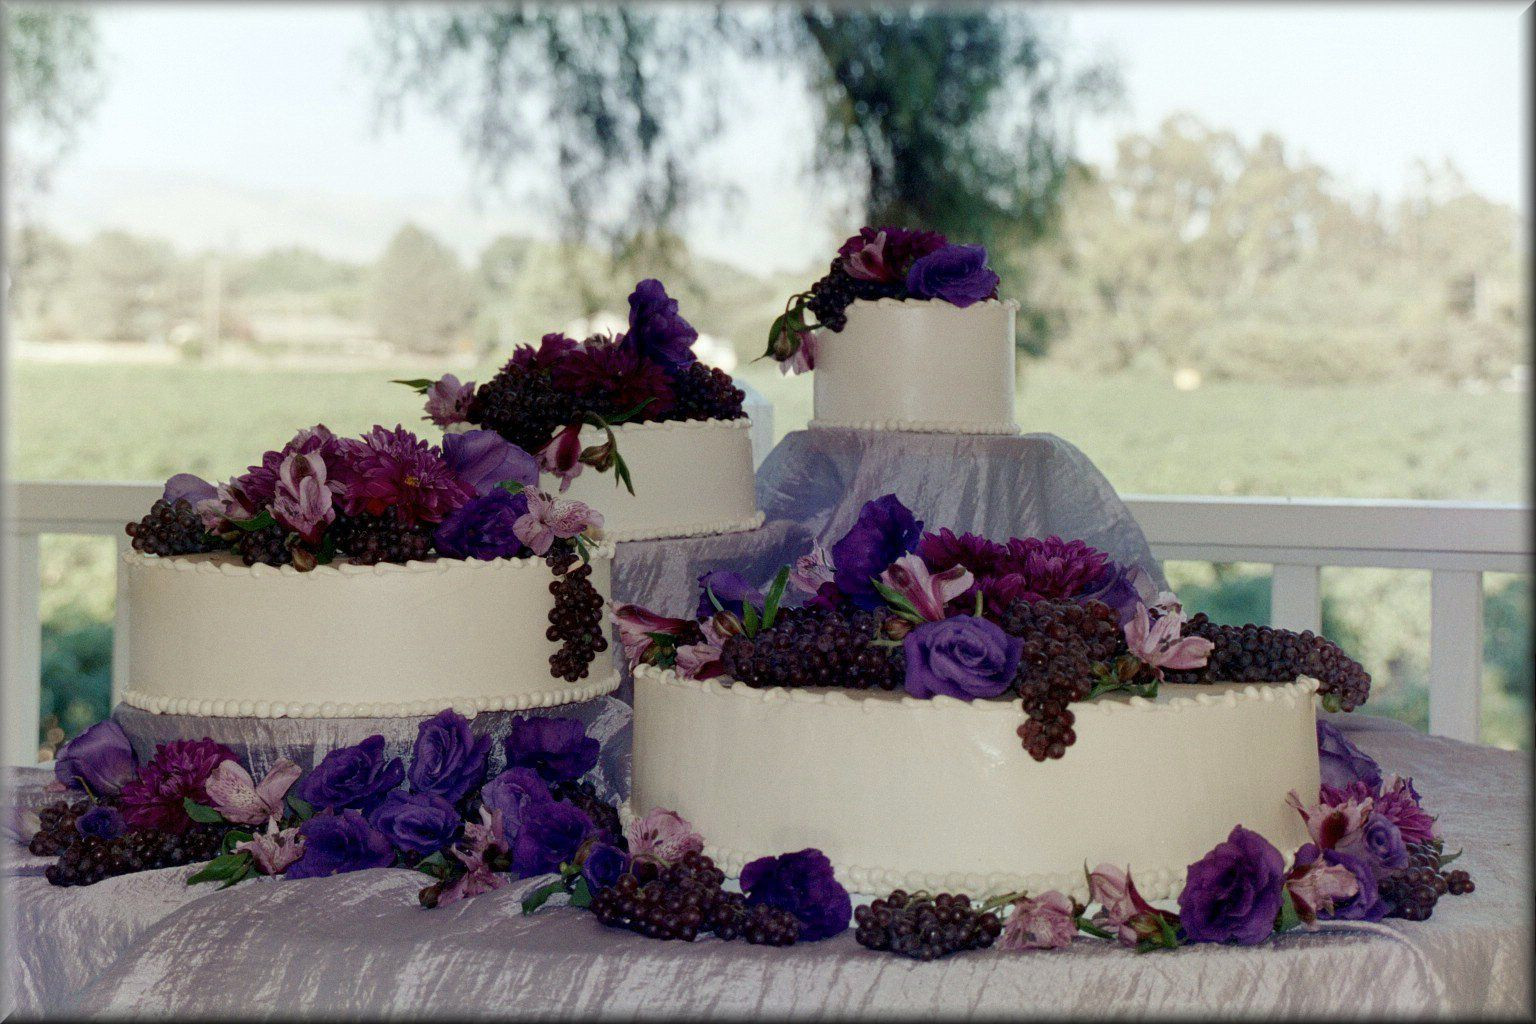 Wedding Cakes Display Ideas  Wedding Cake Display Ideas